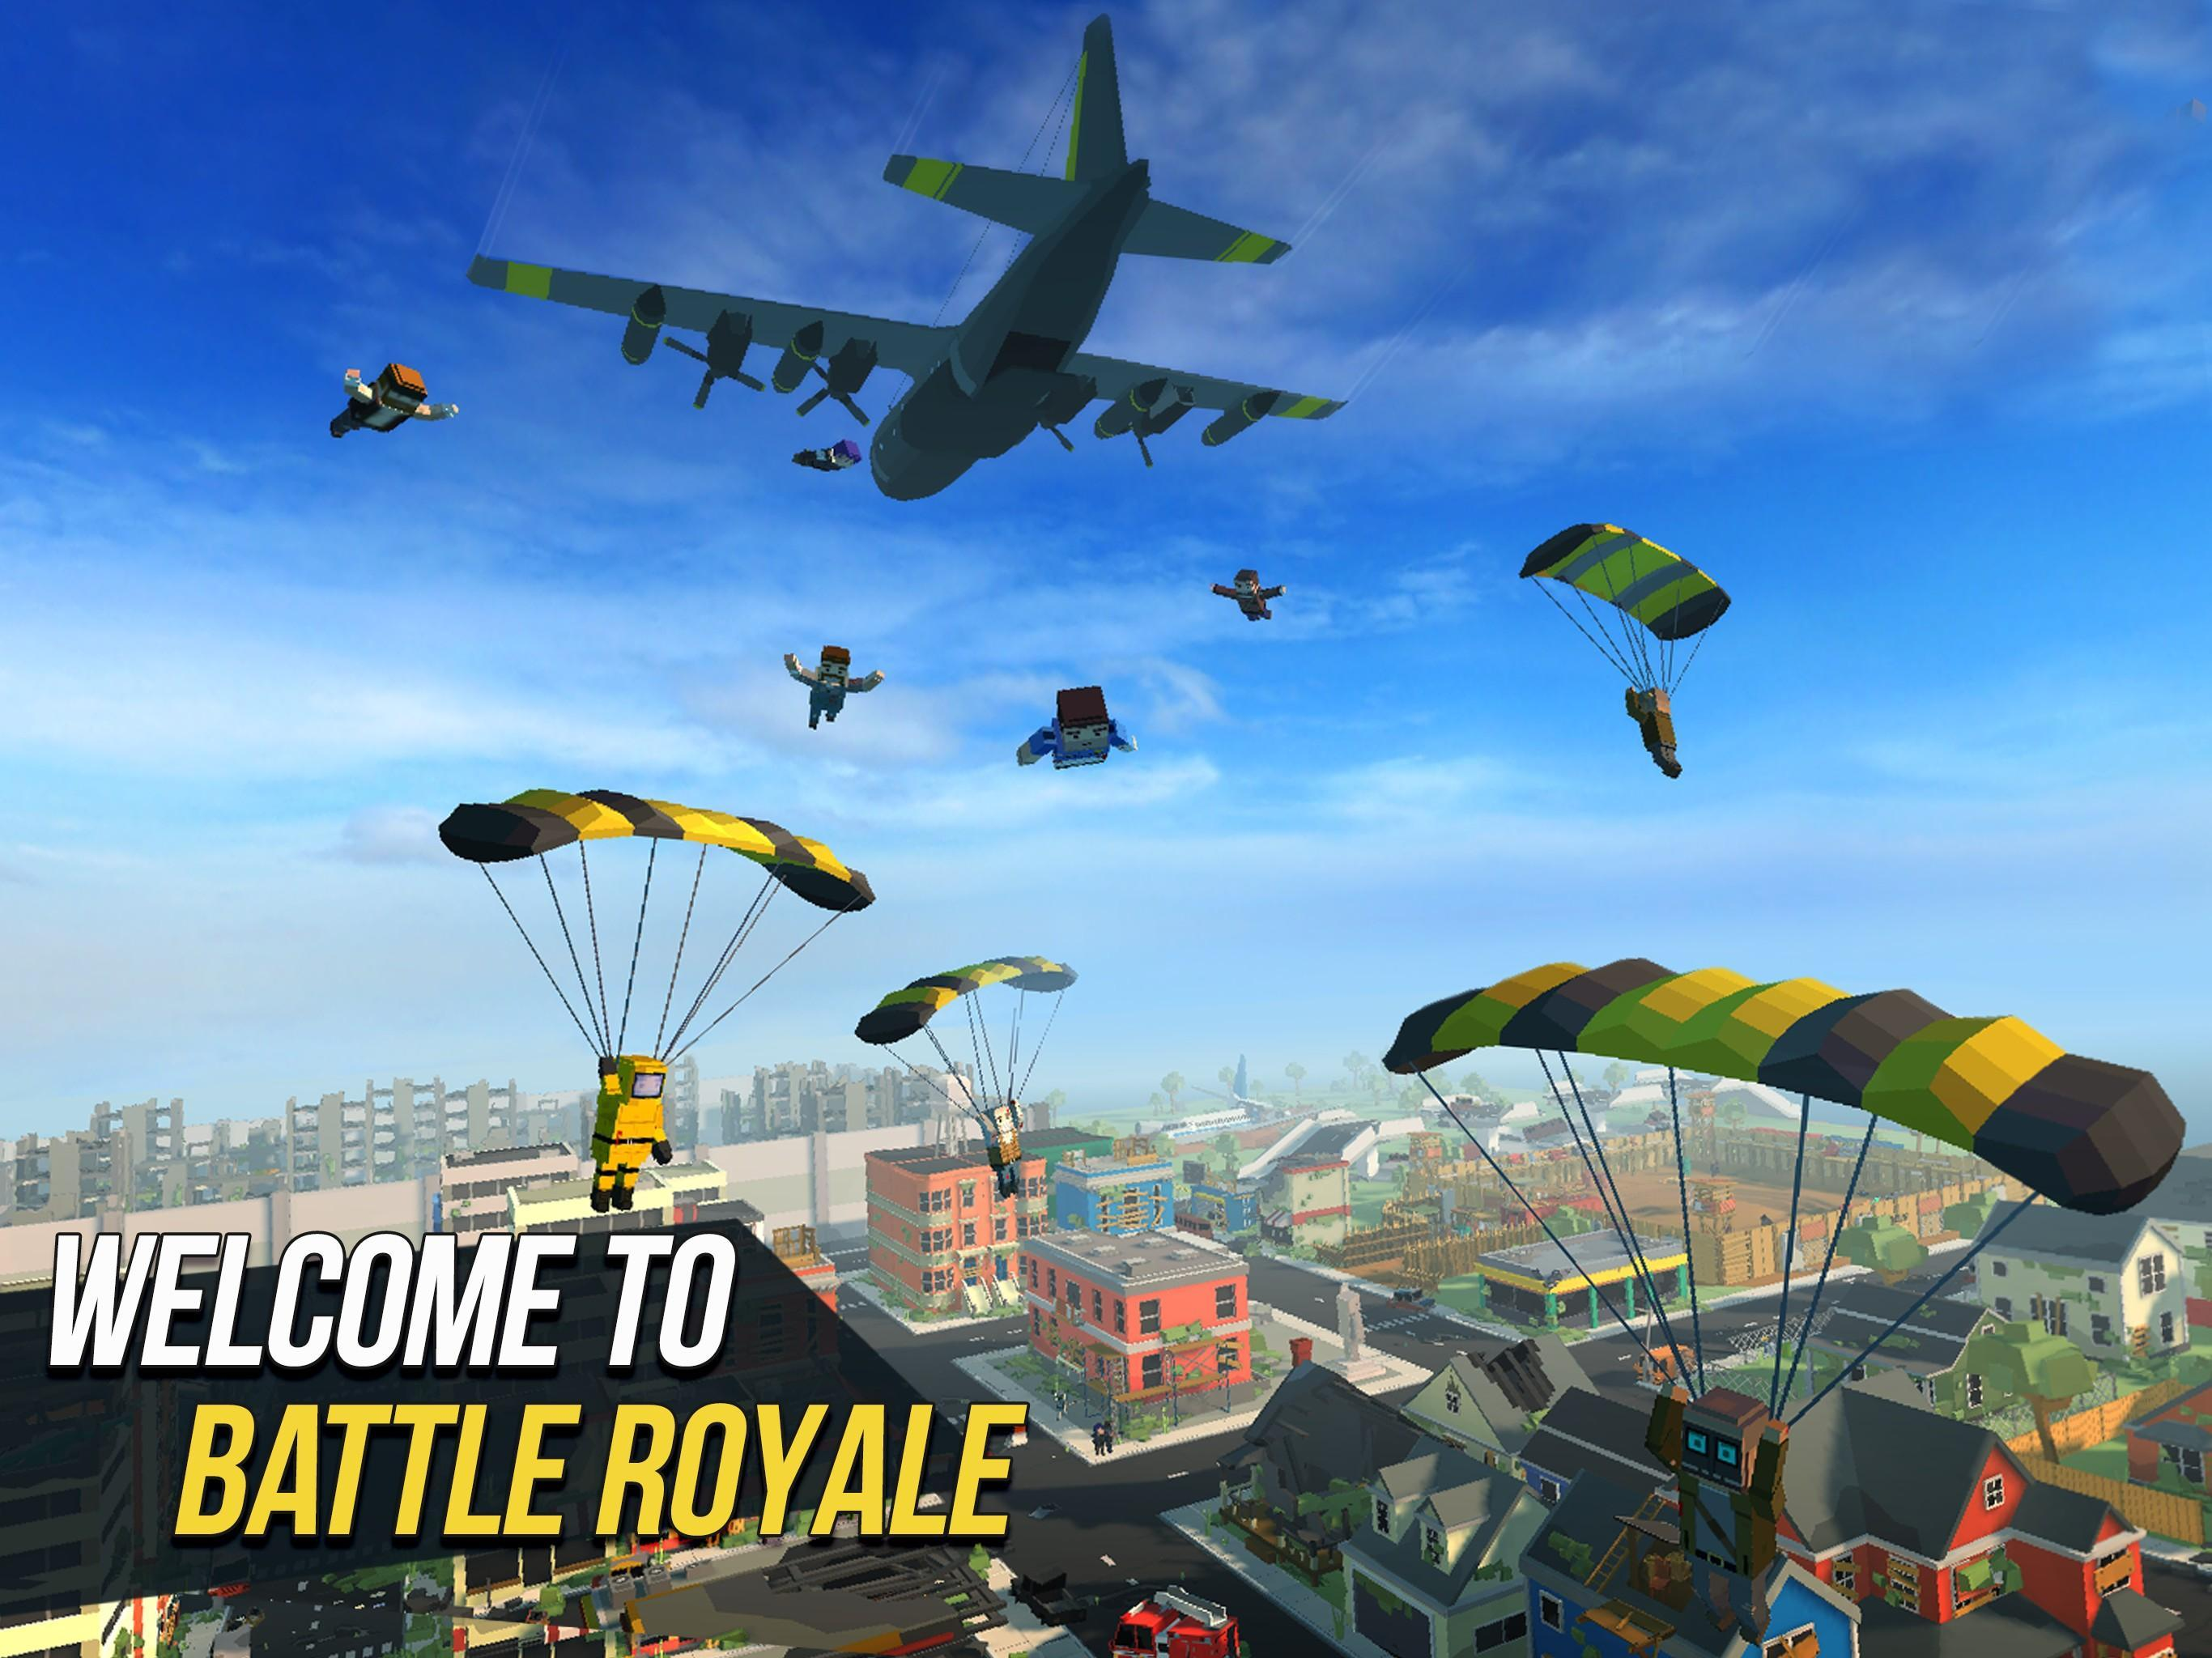 Grand Battle Royale for Android - APK Download